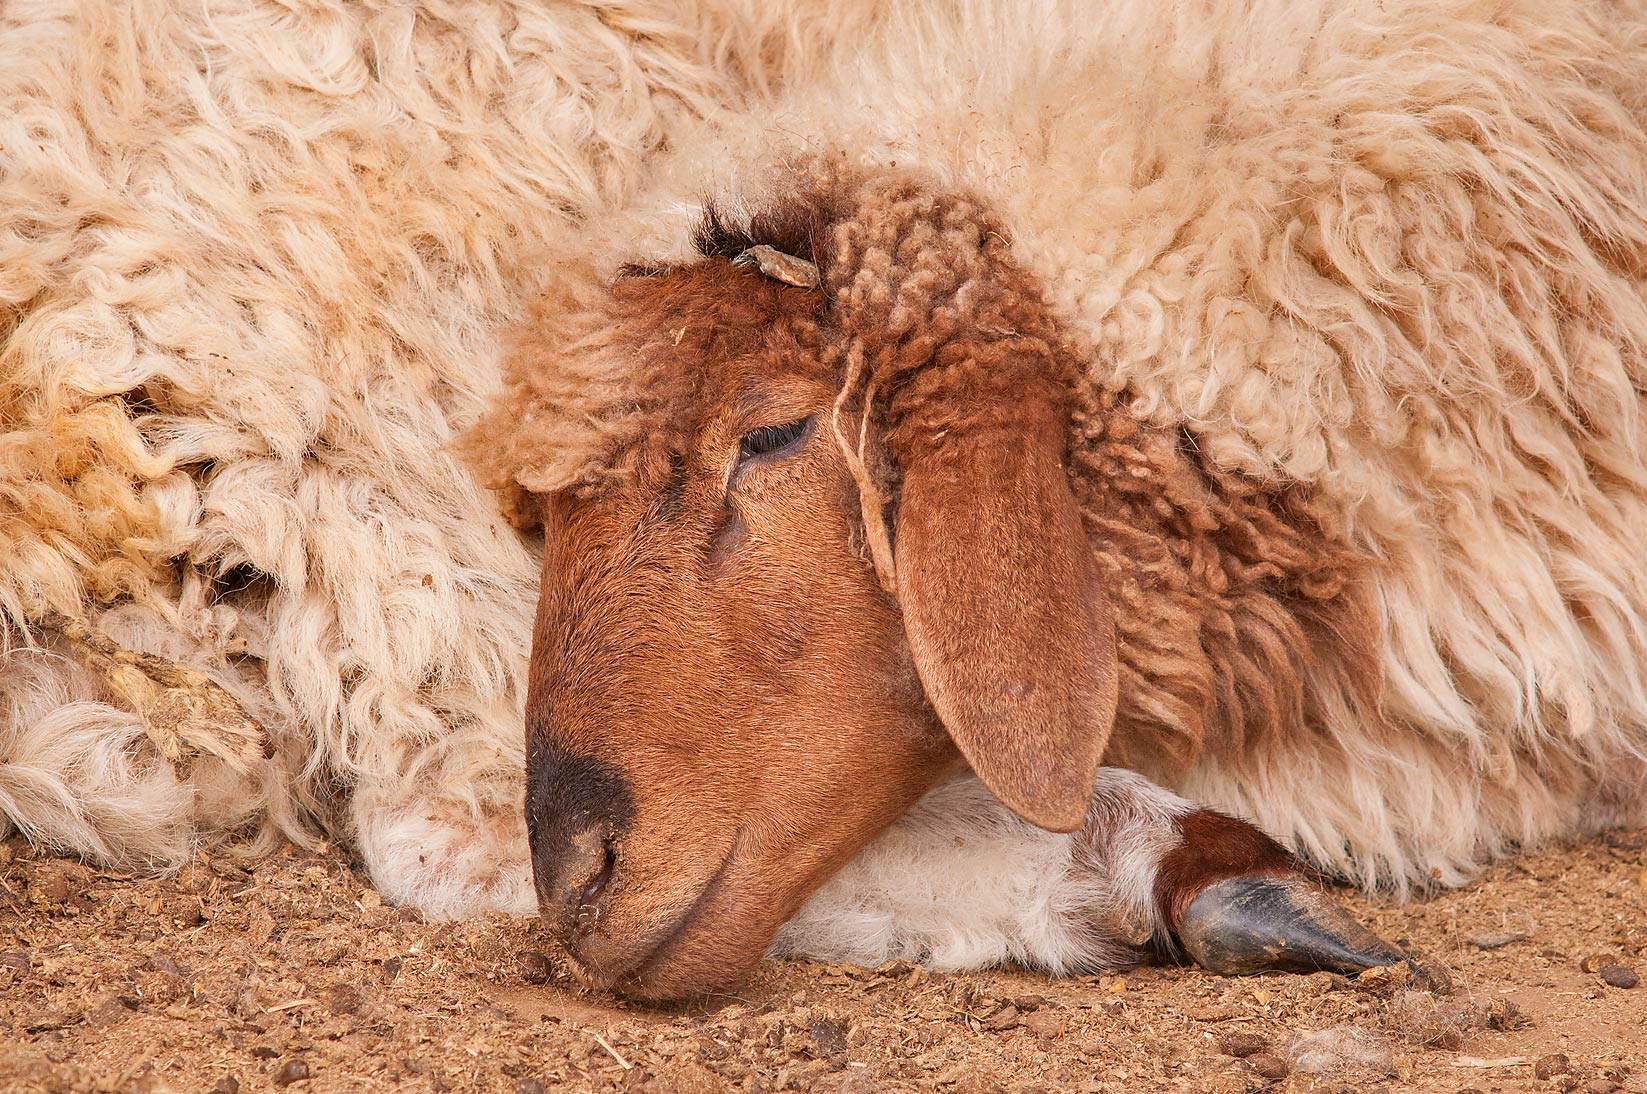 Sheep from Jordan sleeping in Livestock Market, Wholesale Markets area. Doha, Qatar